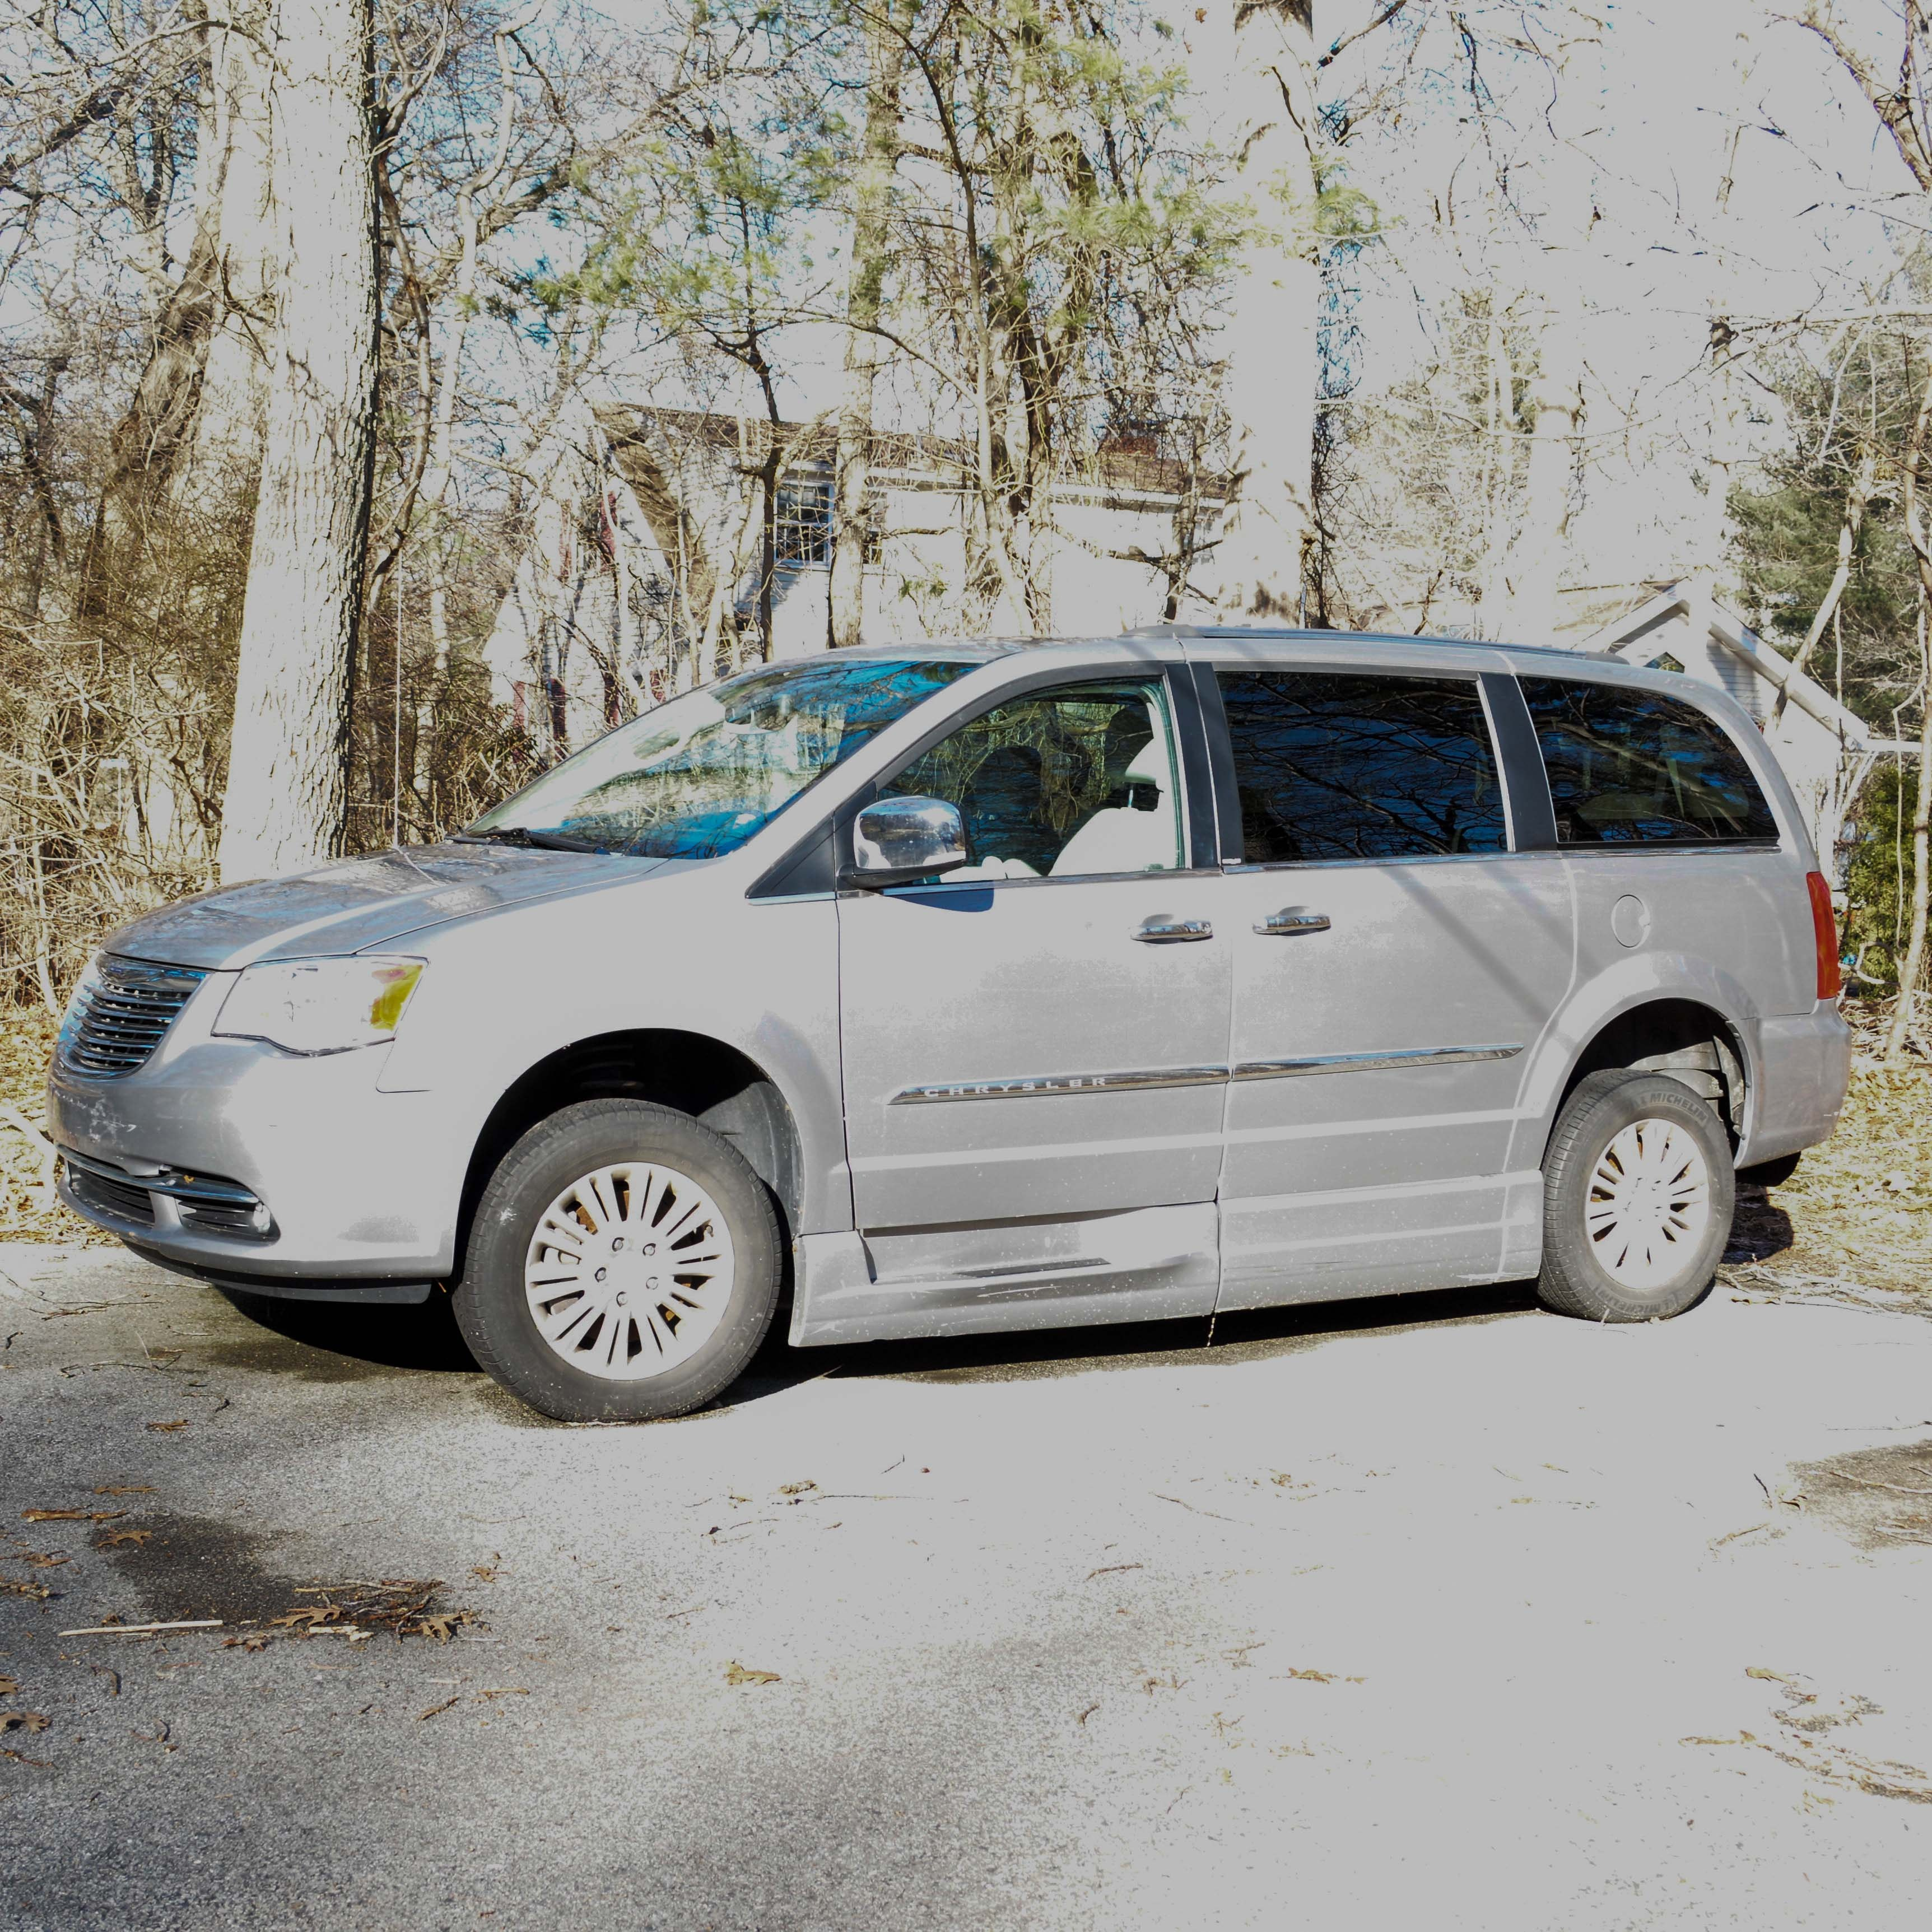 2013 Chrysler Town and Country LTD Platinum with Braun Ability Accessibility